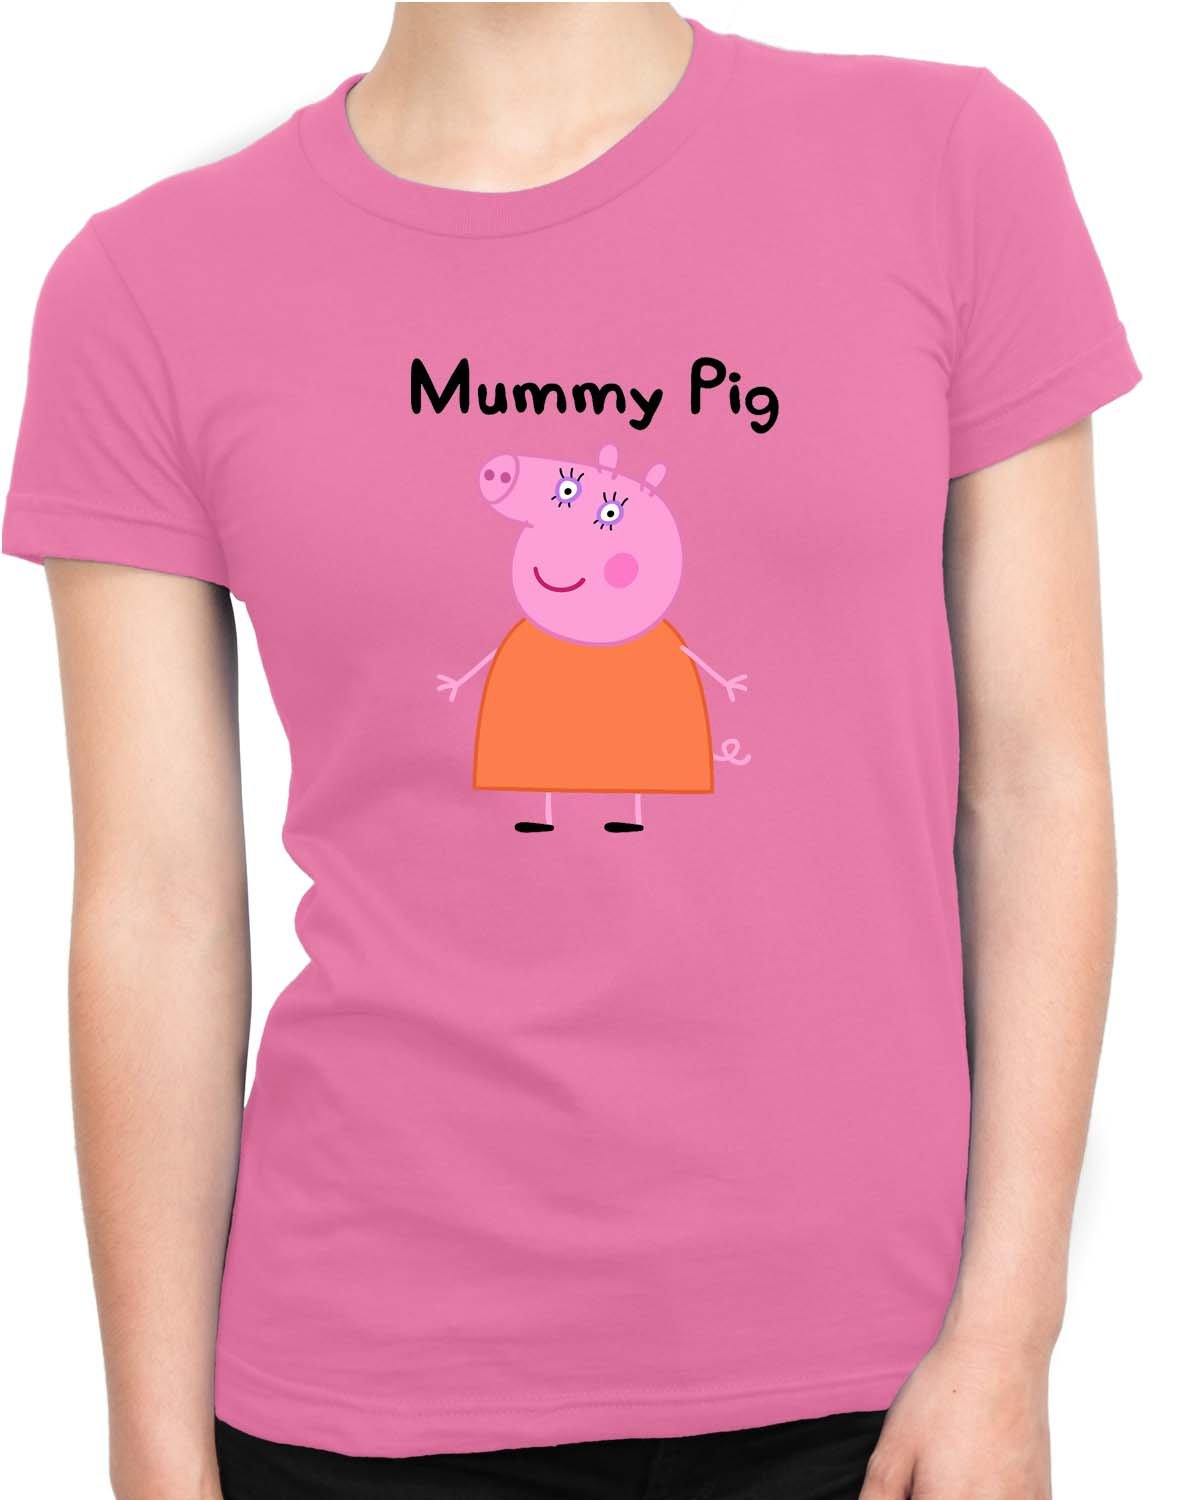 Amazon.com: Mummy Pig Women T Shirt Pink Medium: Clothing